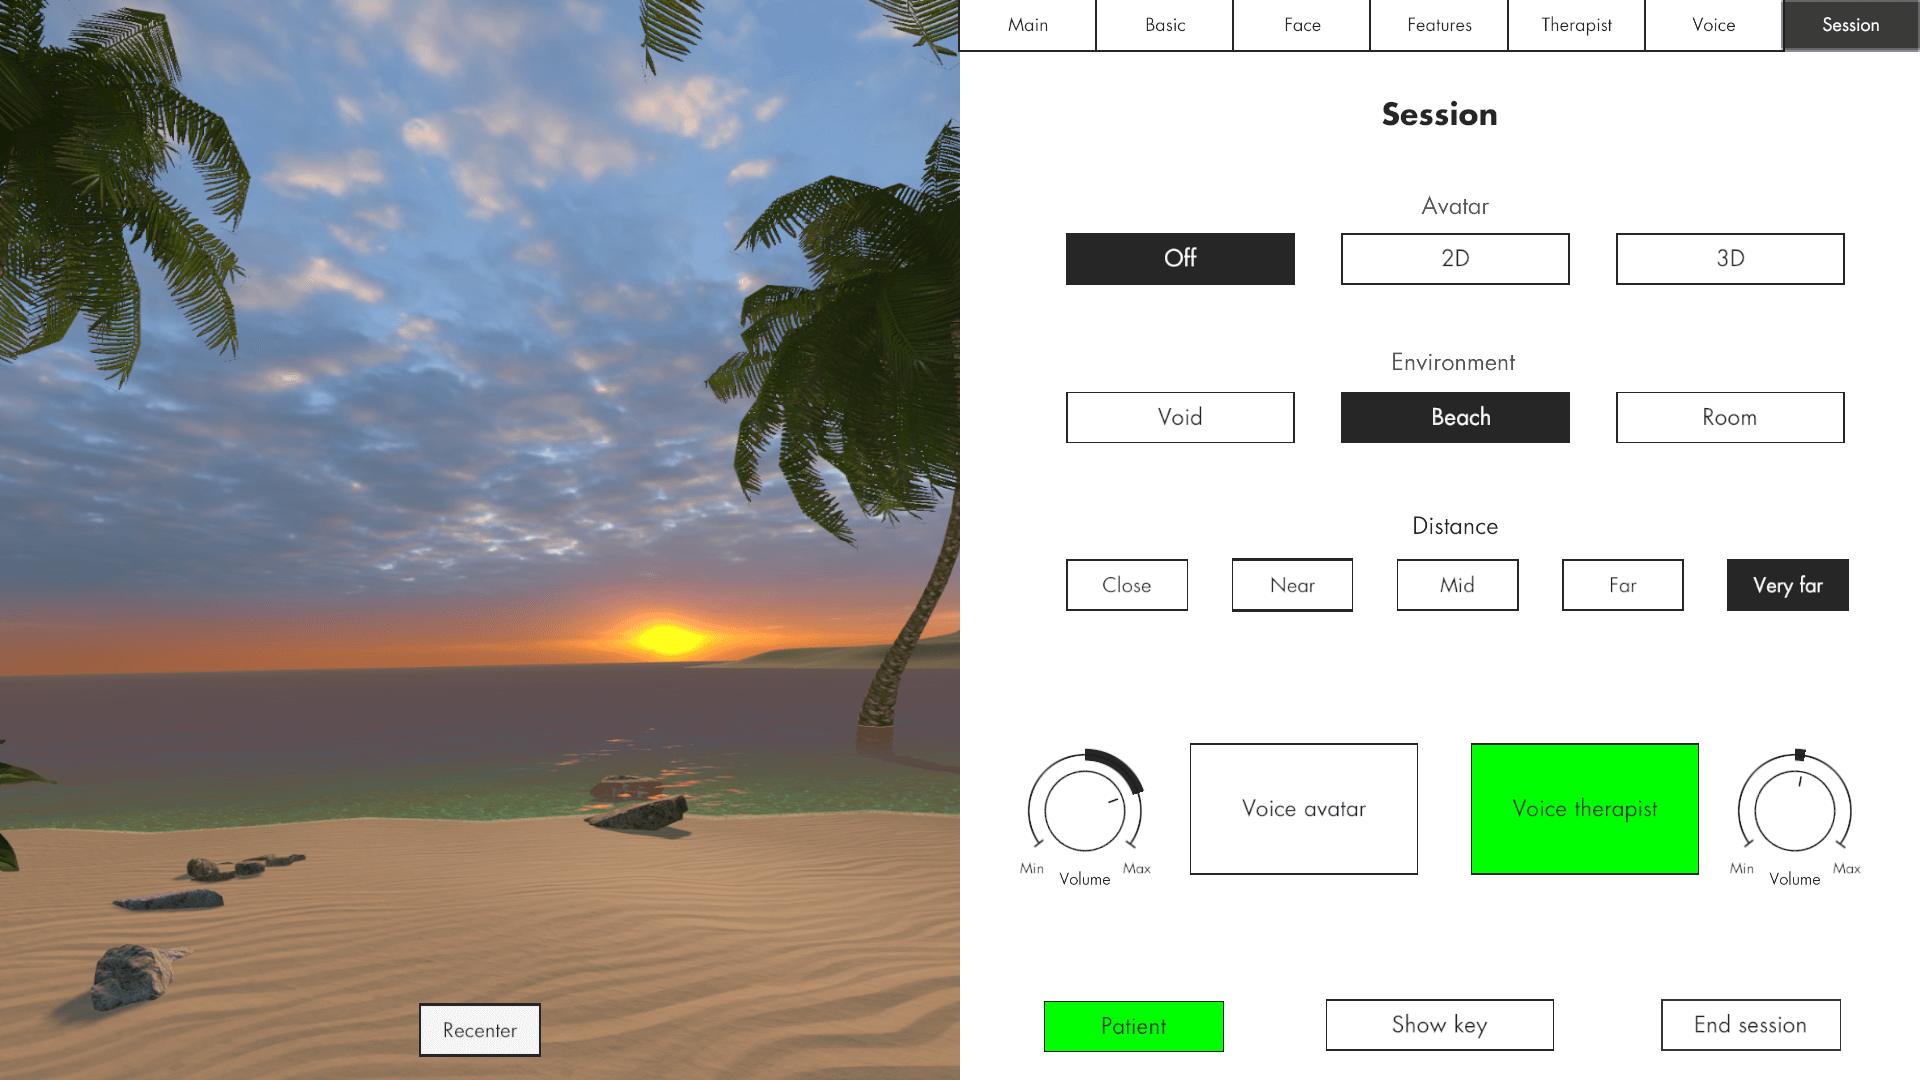 The Challenge Project virtual reality treatment - calm beach image